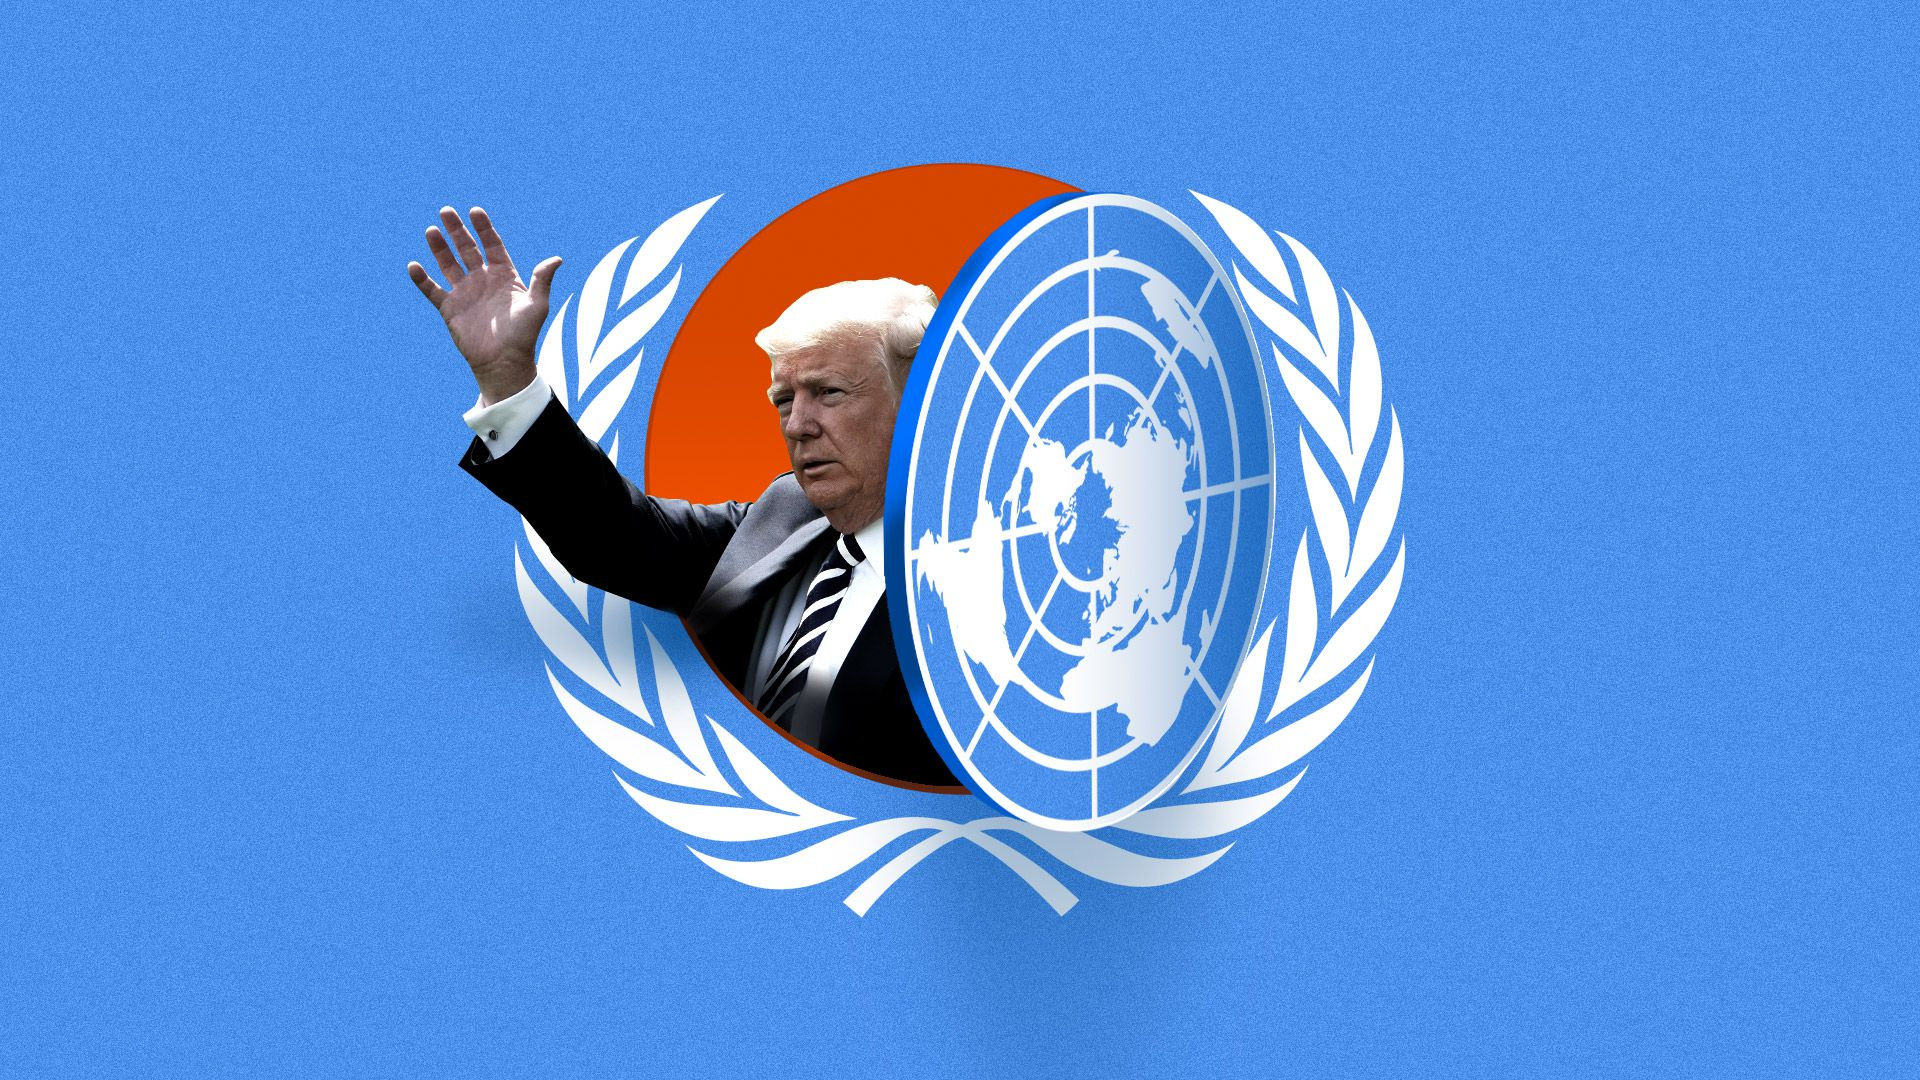 Trump S Sovereignty Week At The United Nations General Assembly Axios